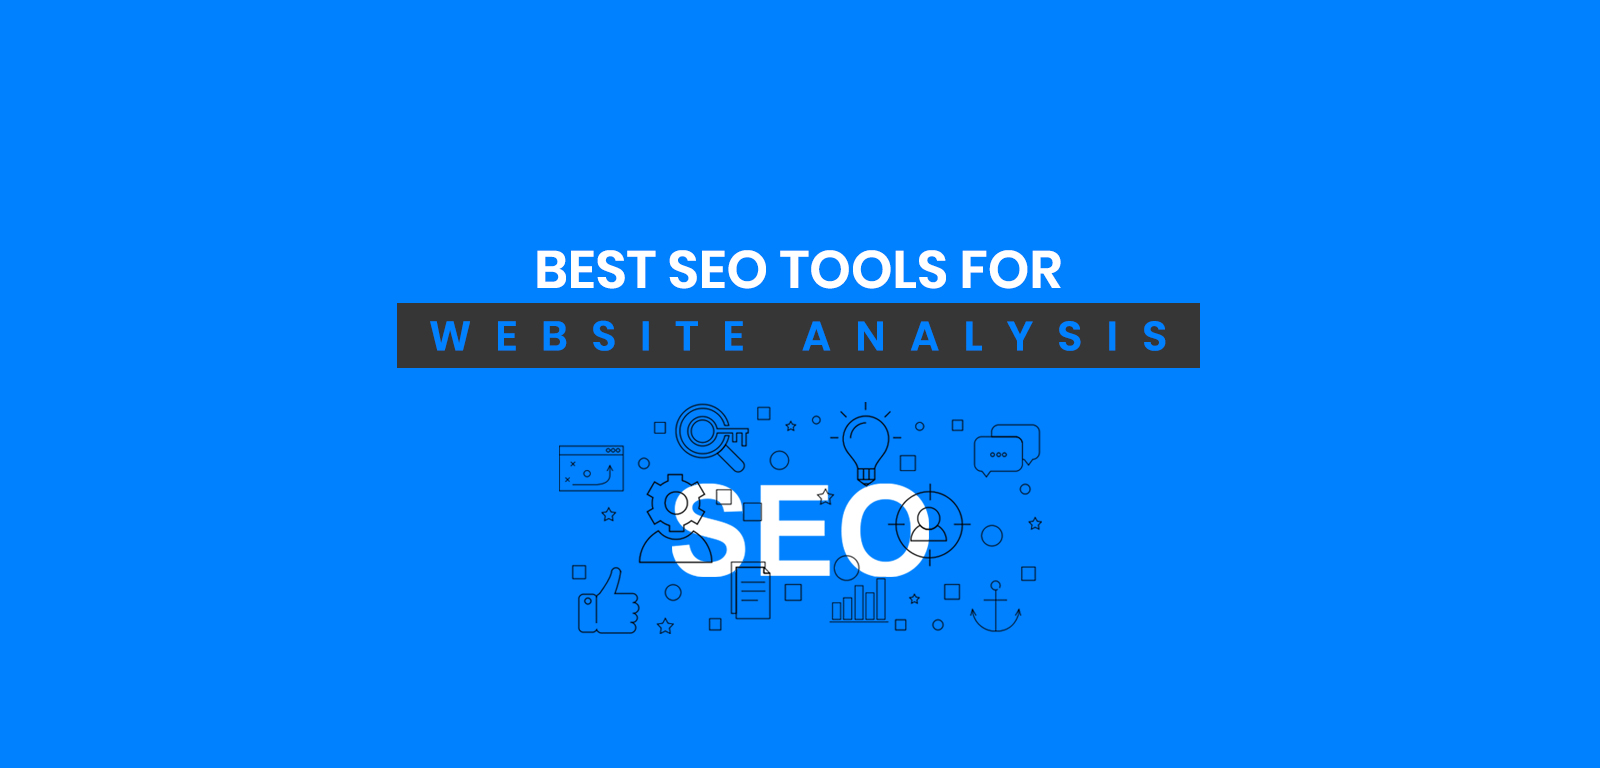 Best SEO Tools for Website Analysis